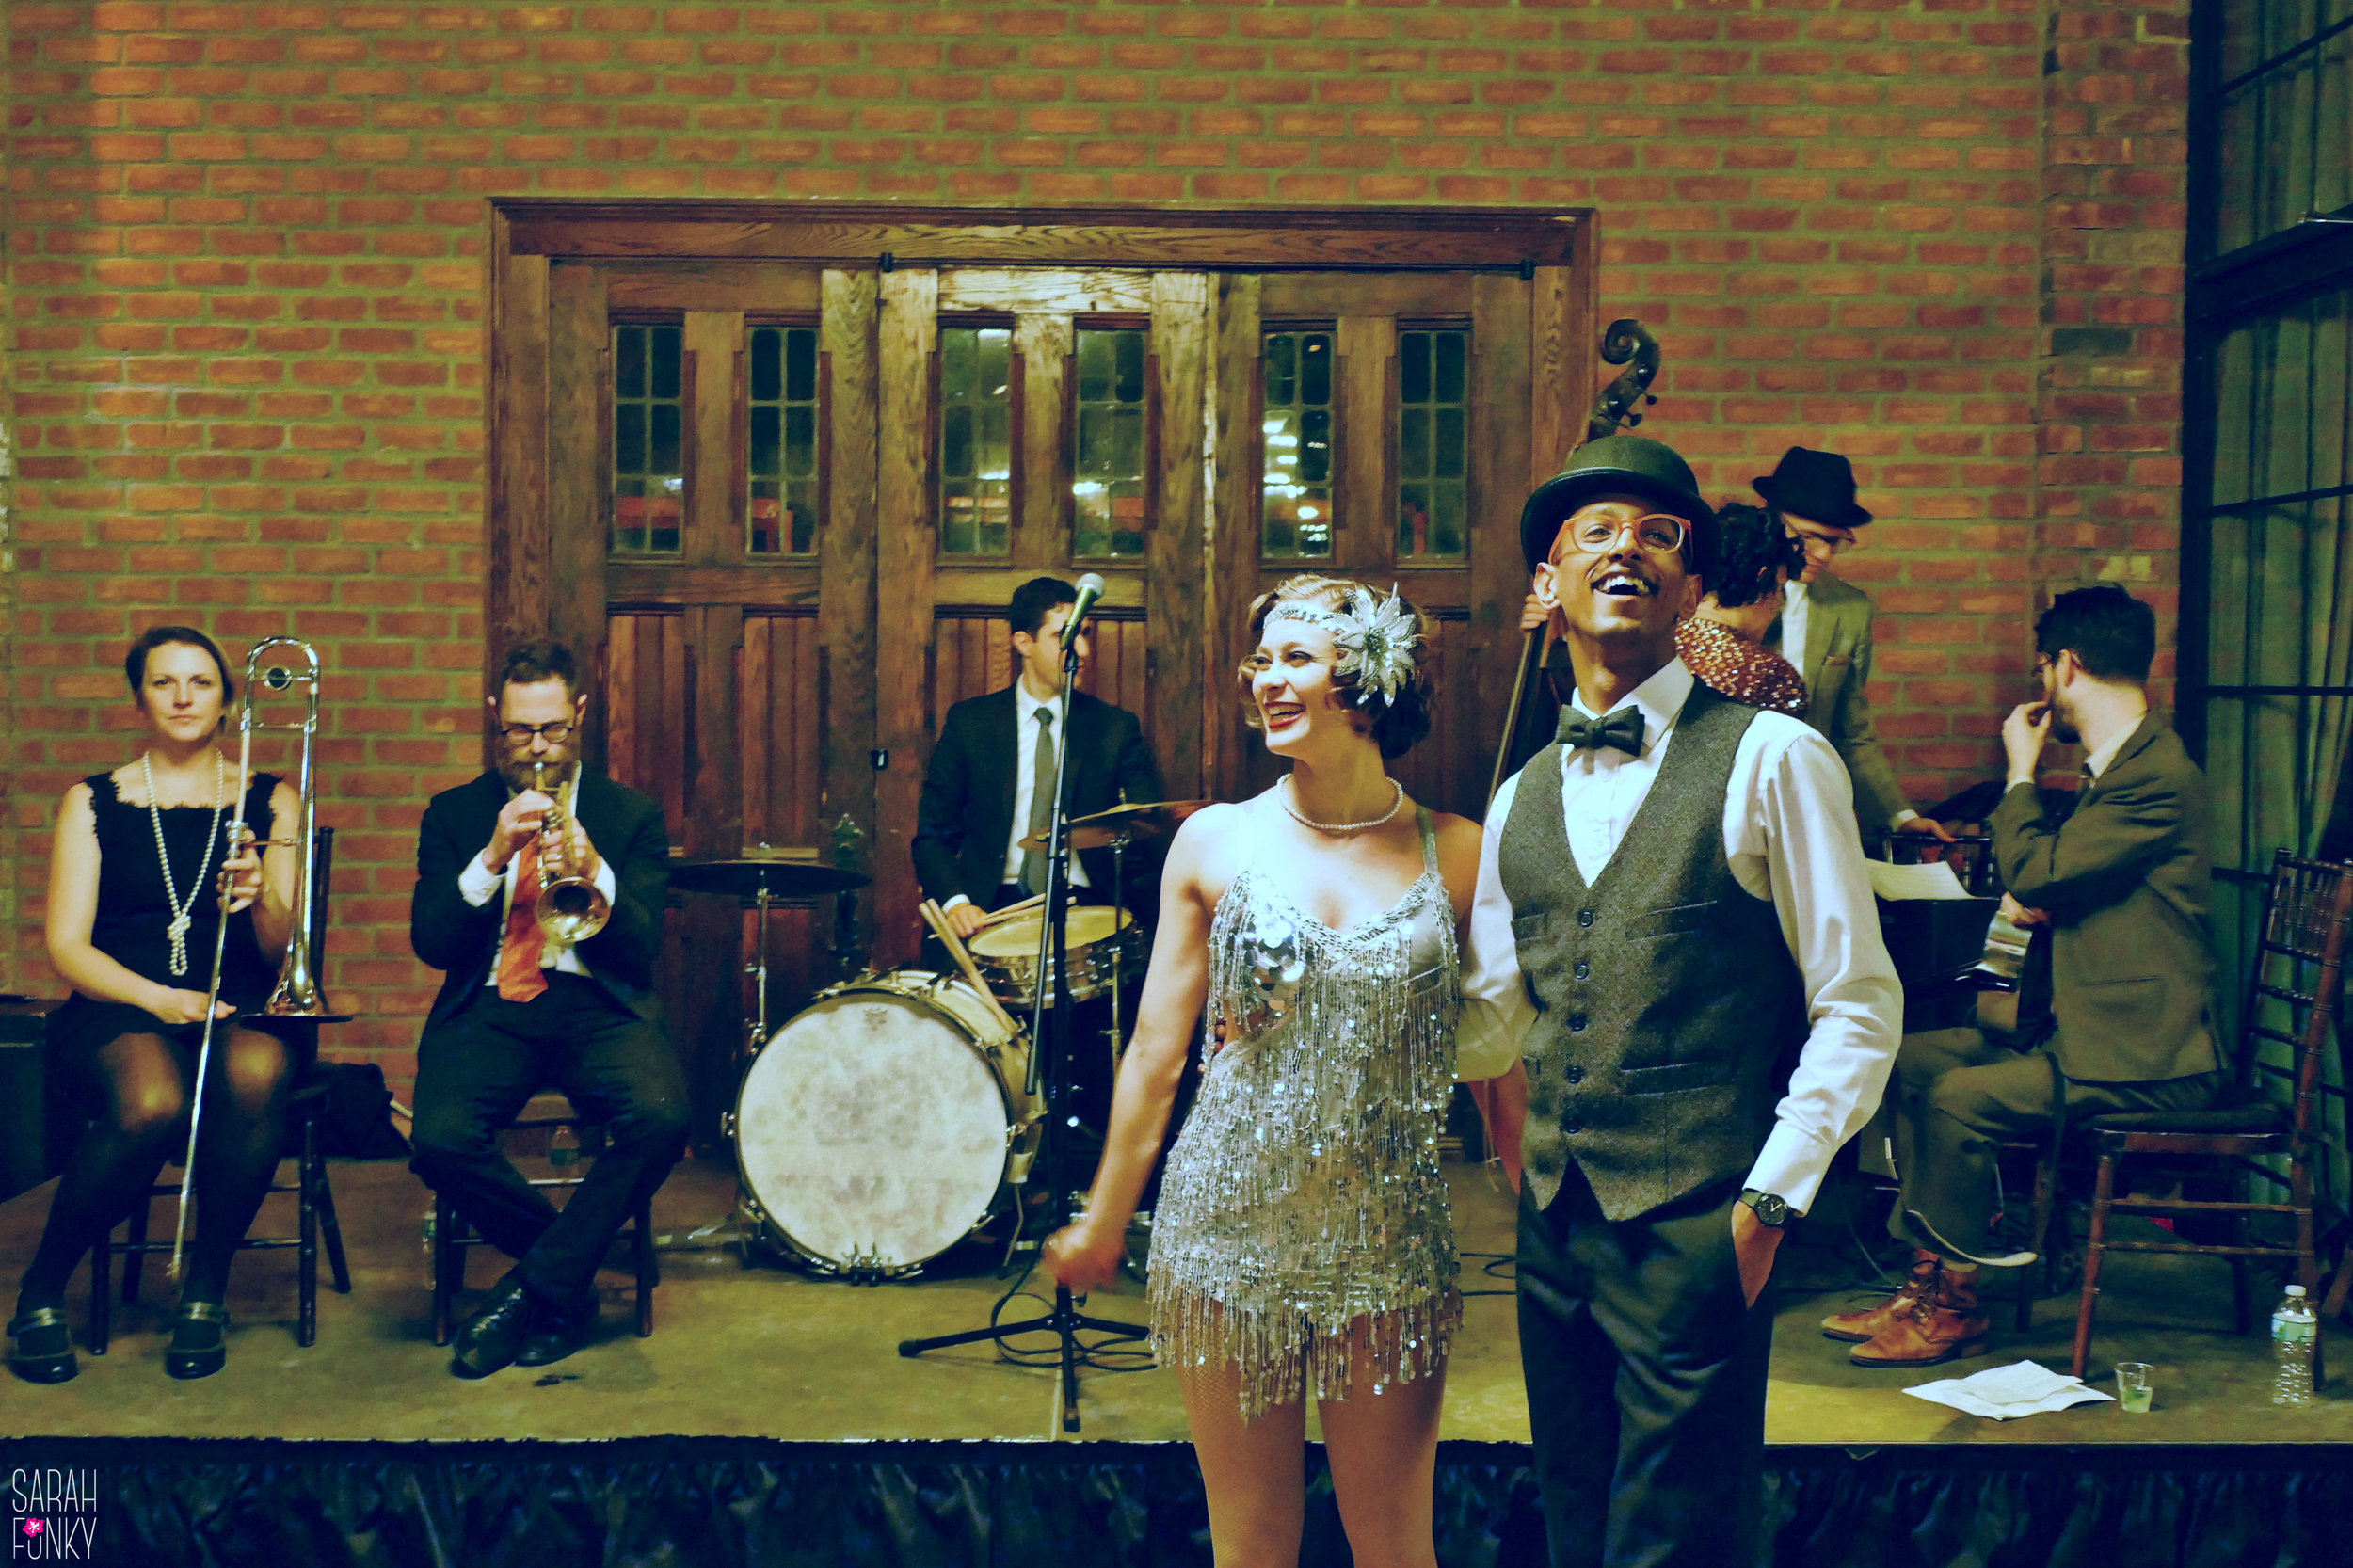 Dancers in flapper dress and Prohibition-style attire